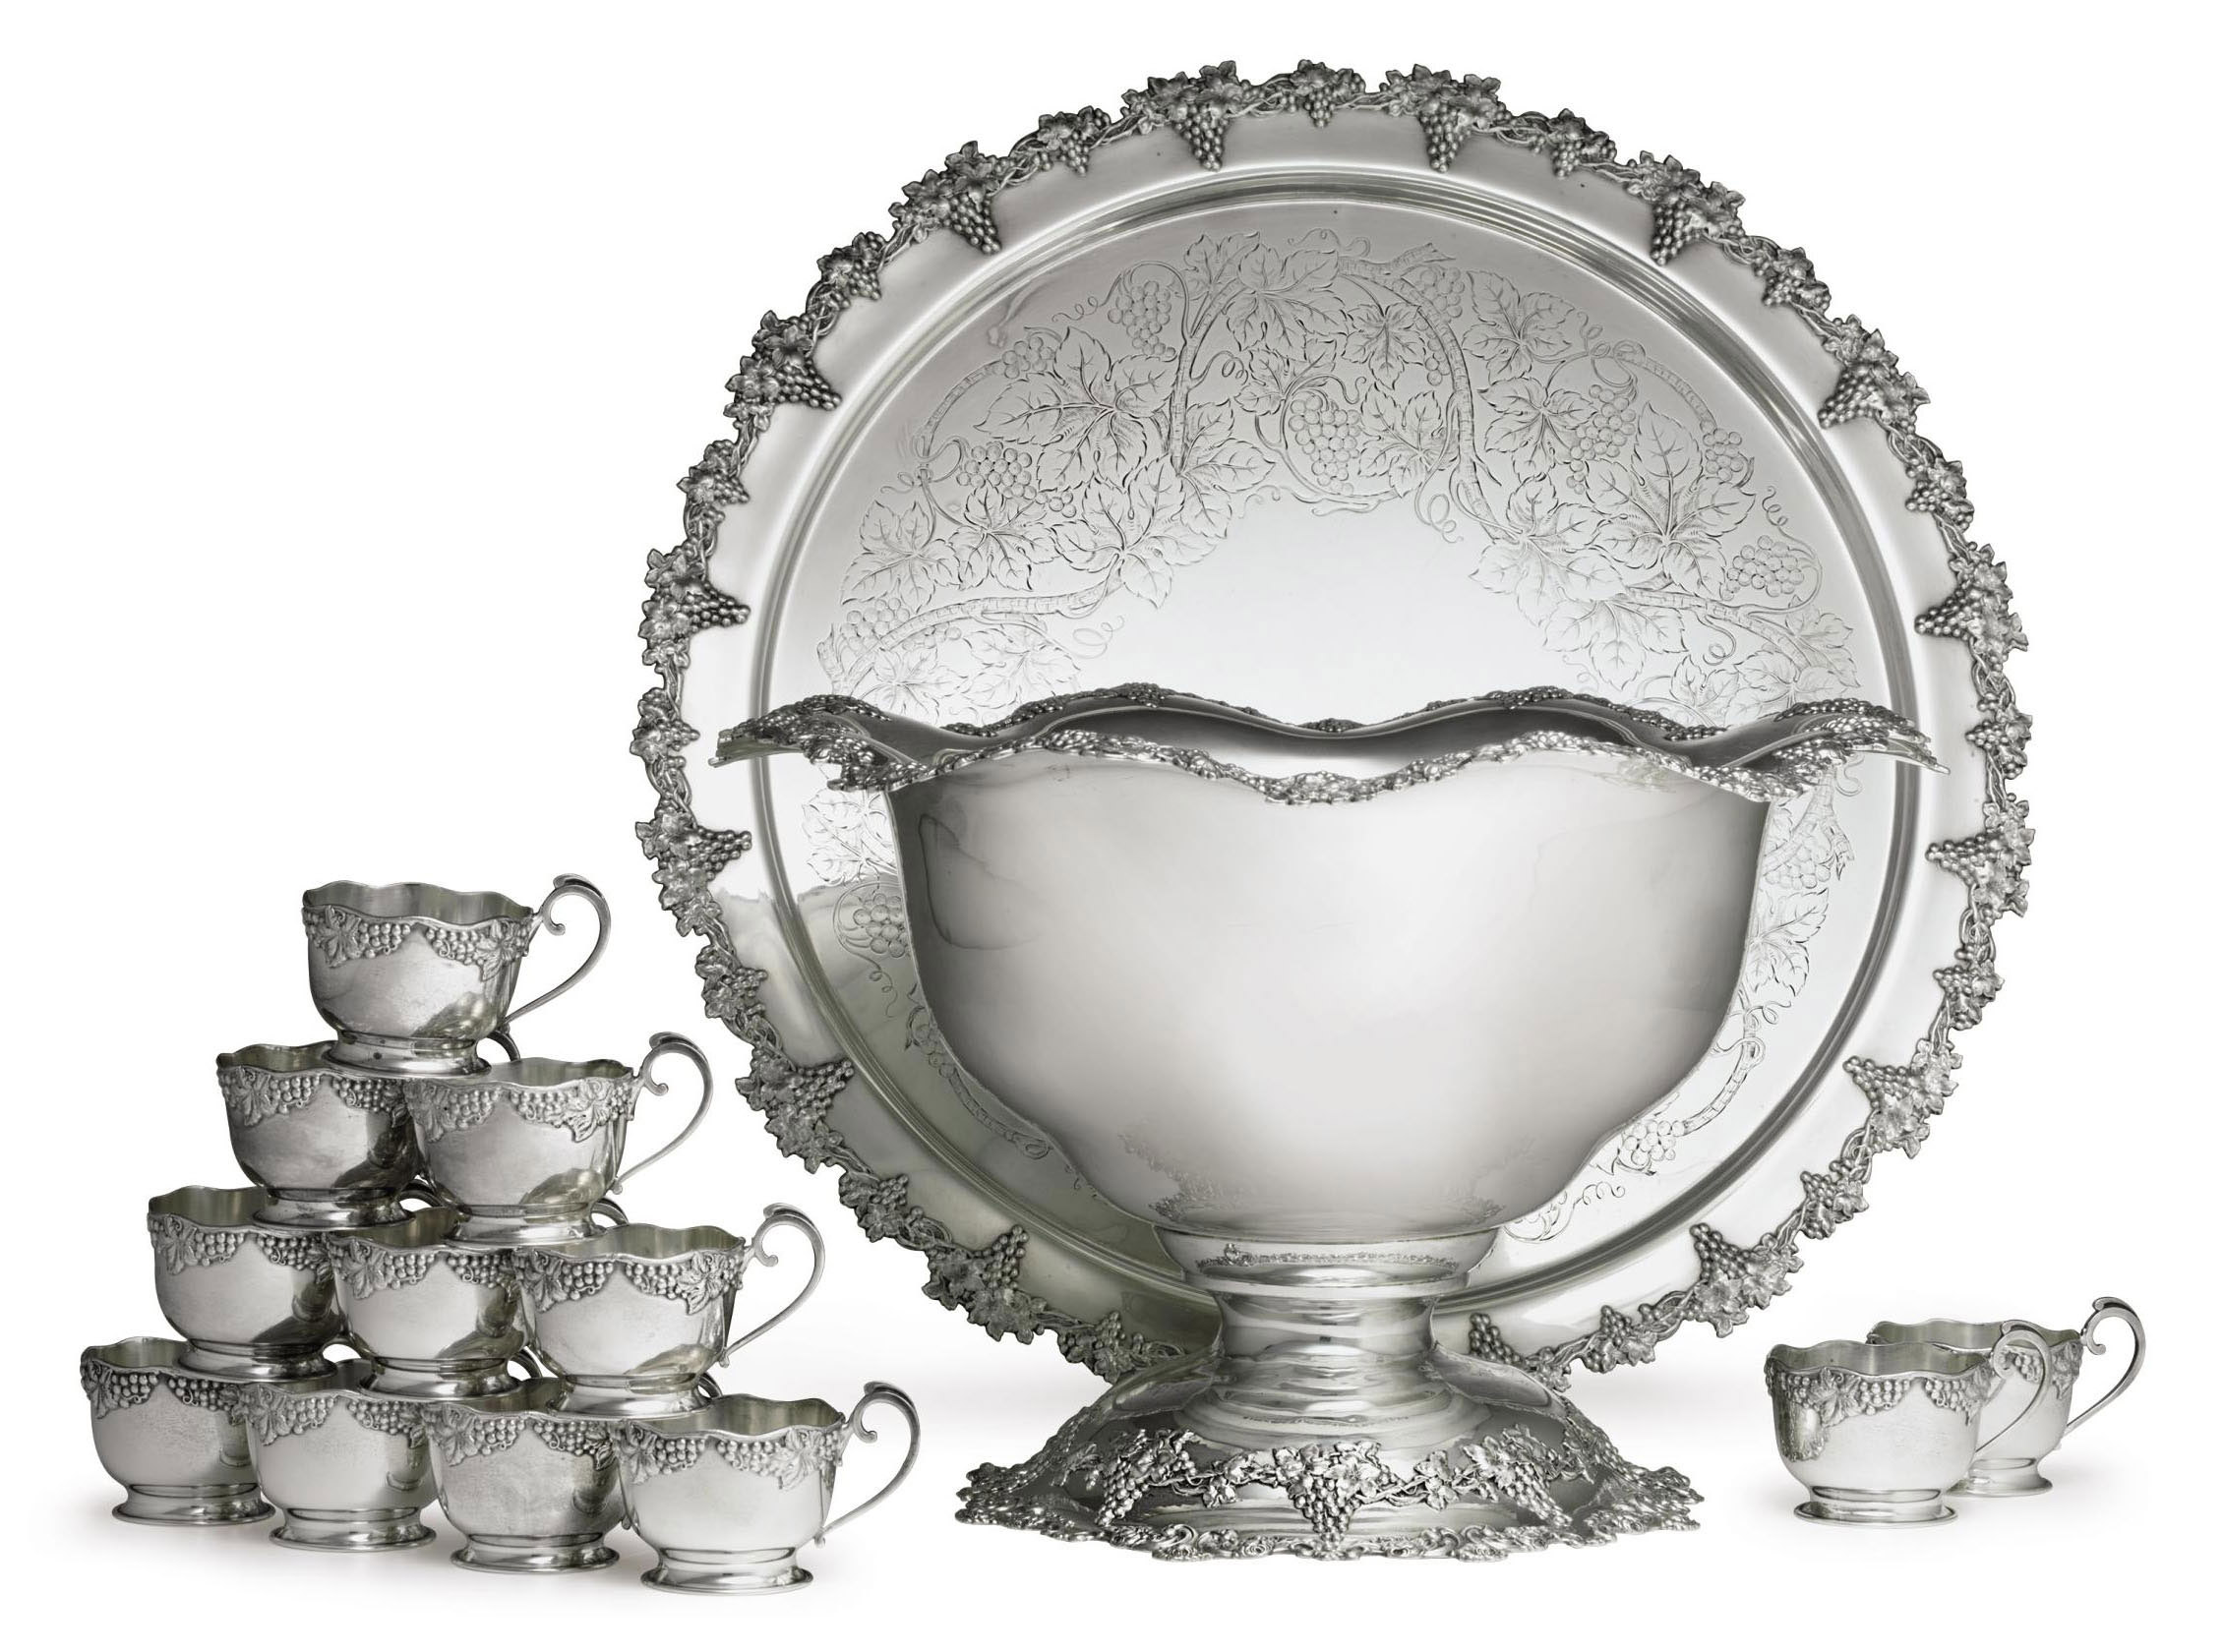 A SILVER PUNCH SERVICE